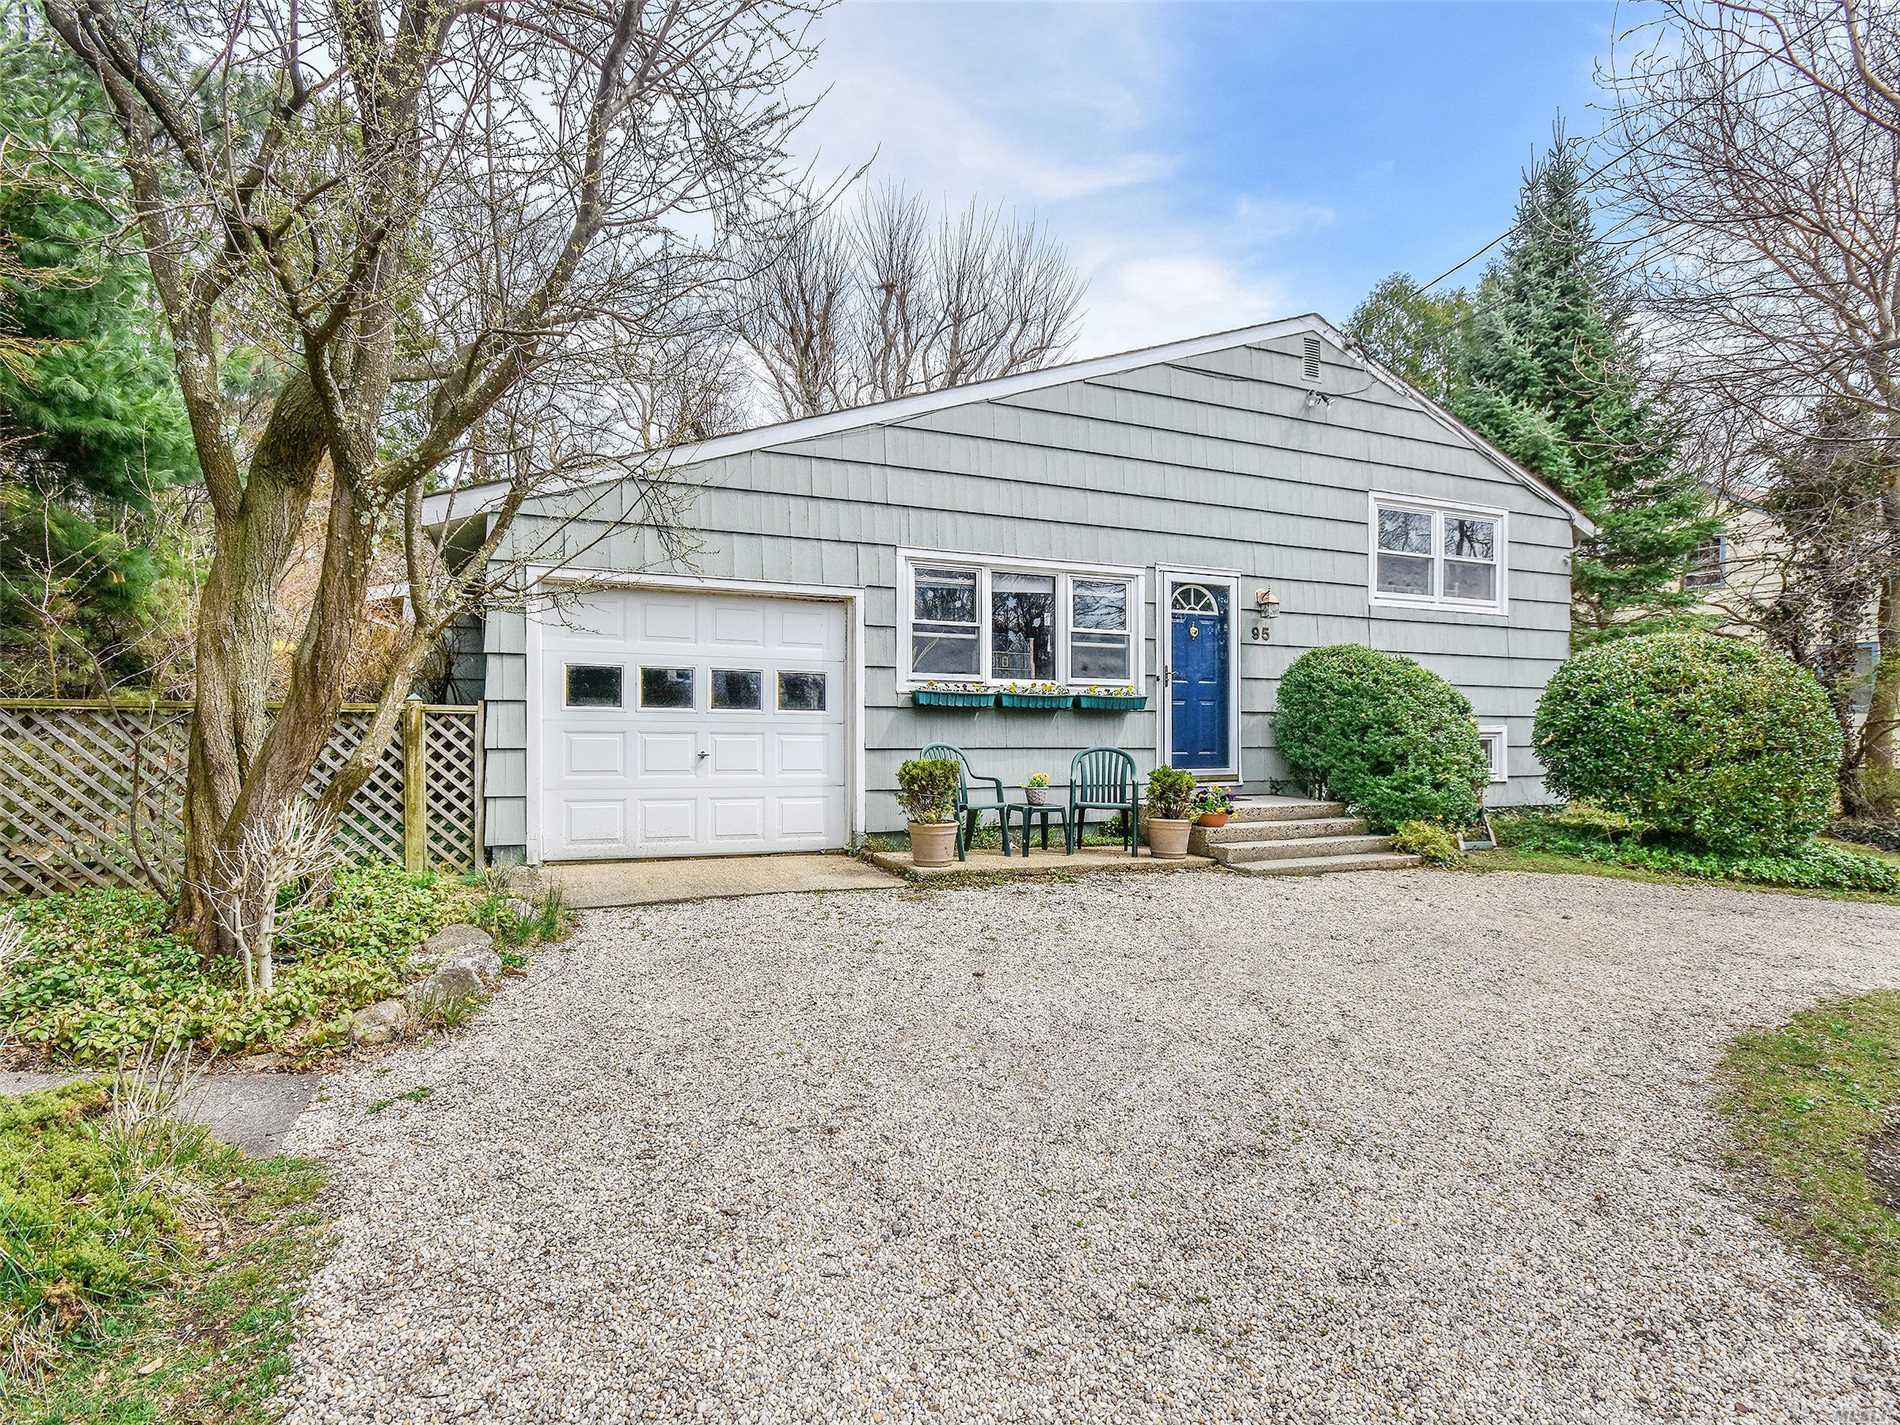 Opportunity is knocking! First time on the market since 1962. This sweet 4 Bedroom, 2 Bath home located on prestigious Glenlawn Avenue offers endless possibilities. Perfect for first time home buyers or downsizing! Spacious lot, fenced yard & quiet location! No closing Before 7/15/19.